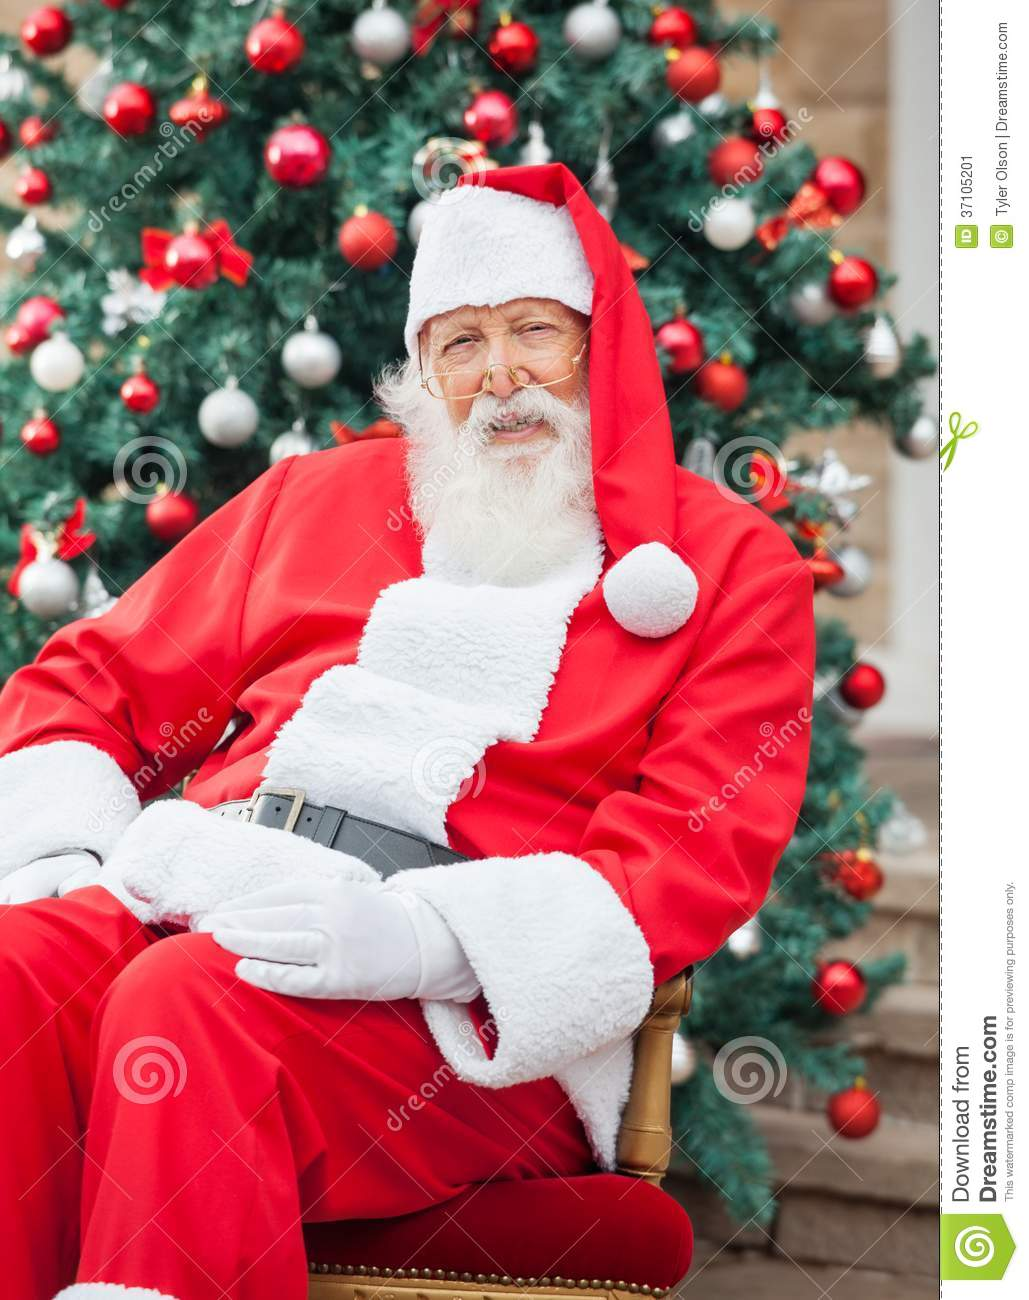 Santa Claus Sitting Against Decorated Christmas